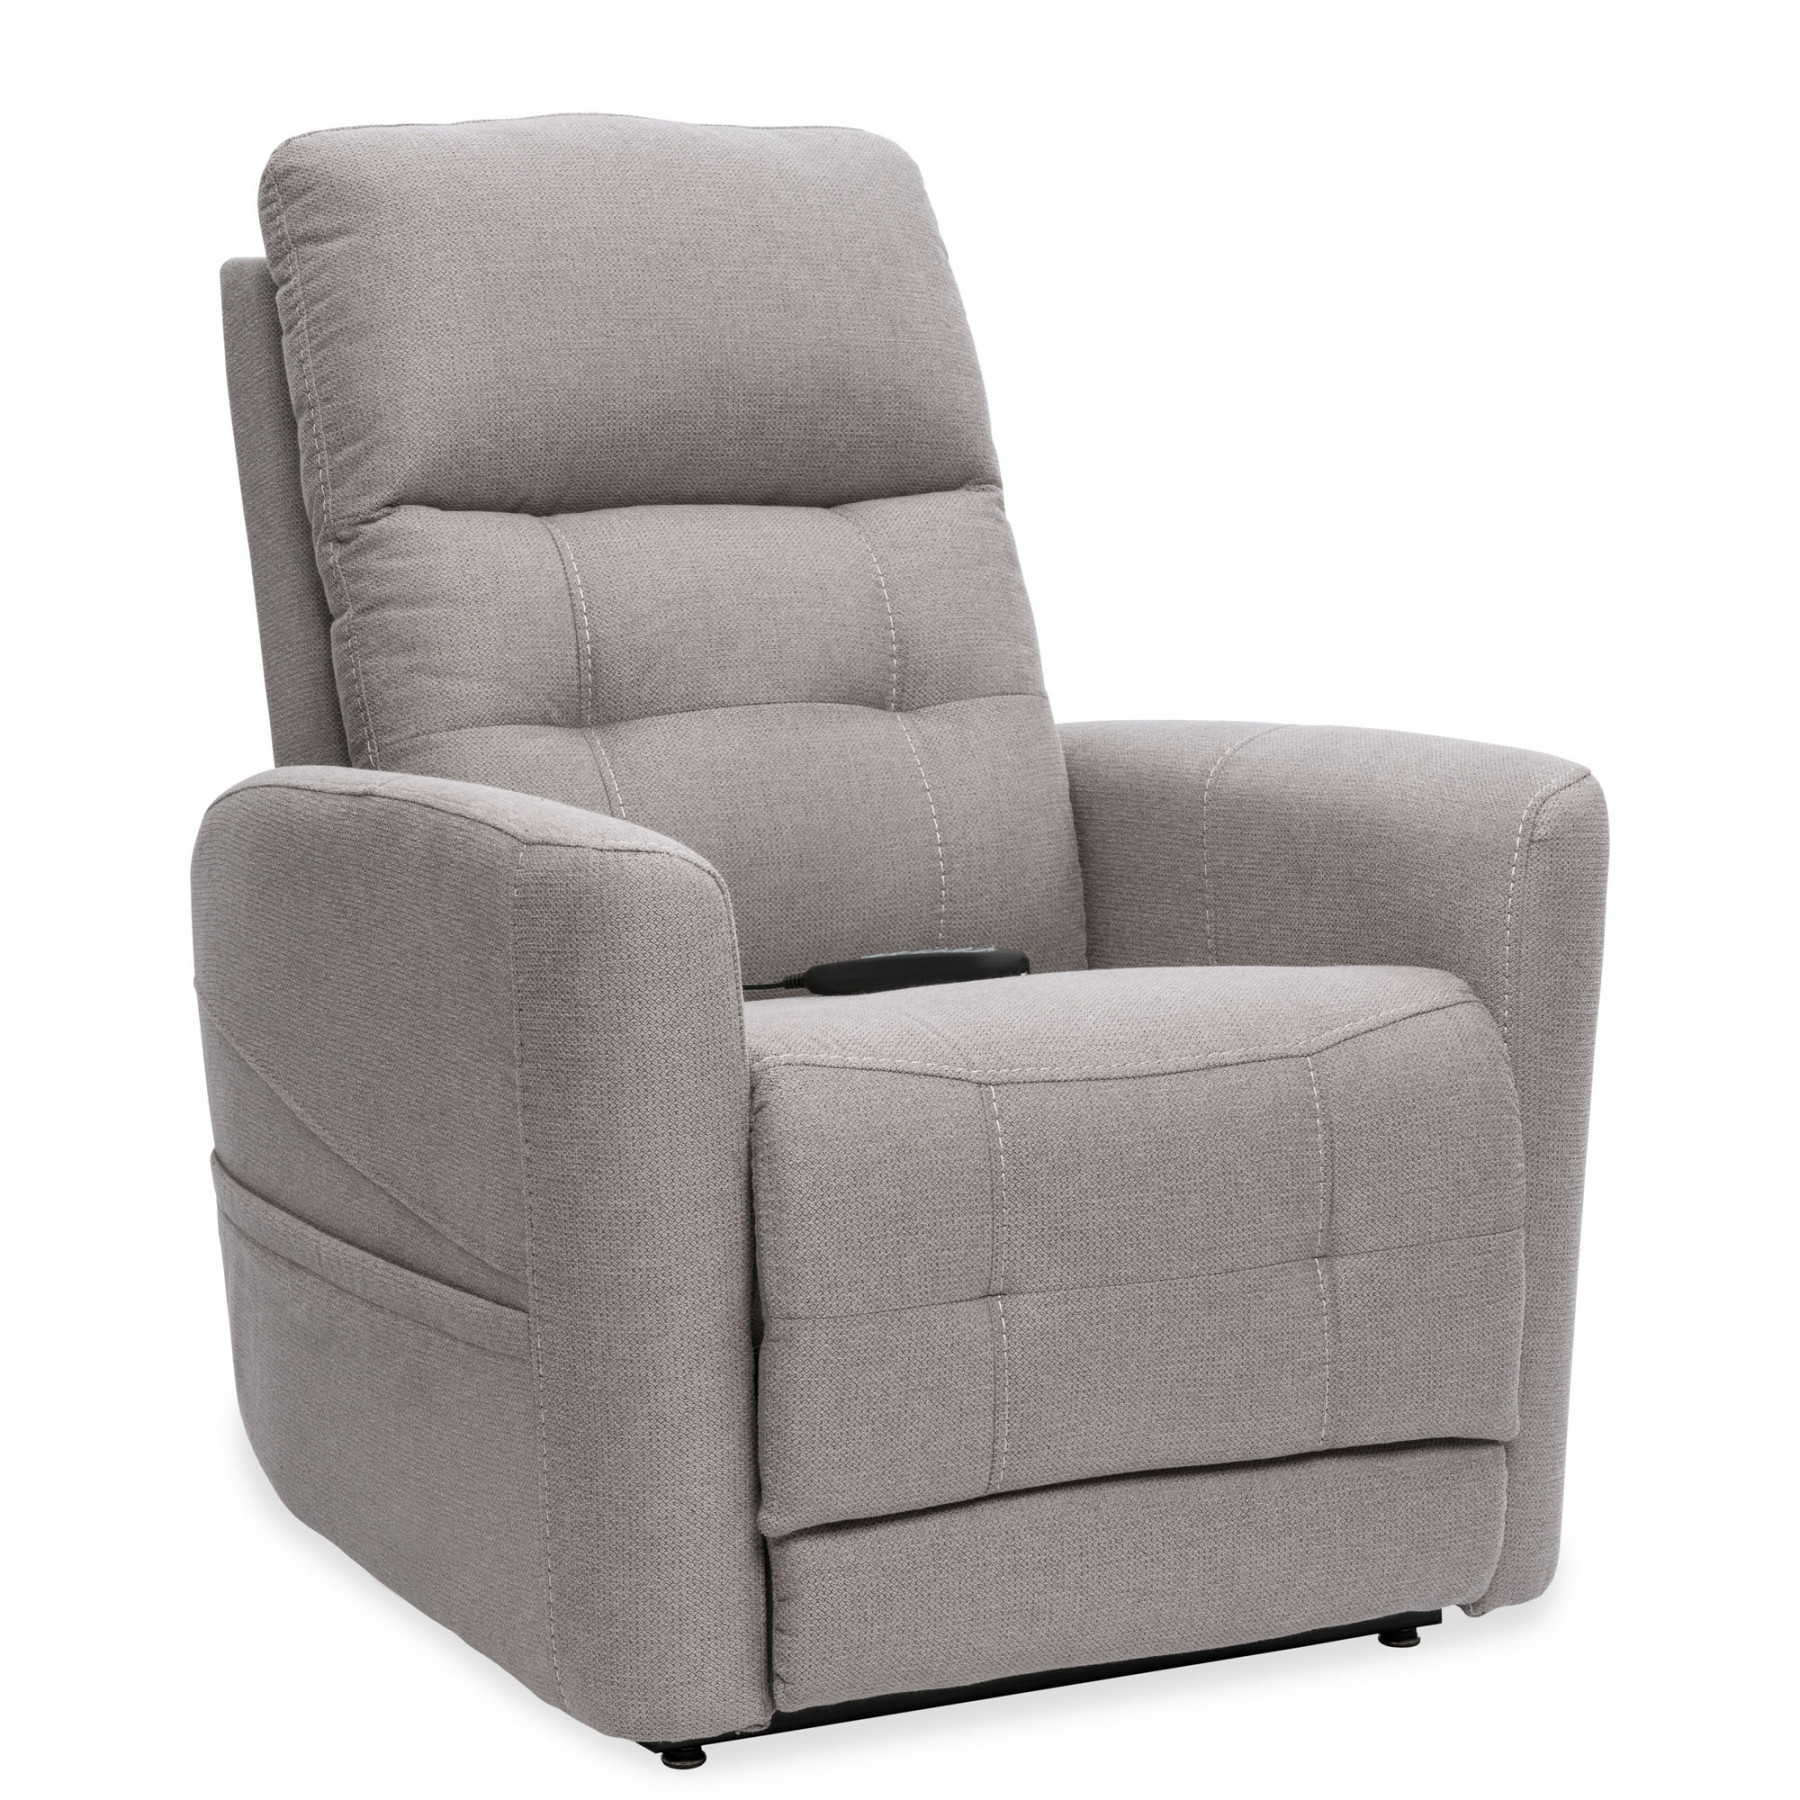 Excellent Pride Vivalift Perfecta Plr945 Power Recliner Gmtry Best Dining Table And Chair Ideas Images Gmtryco